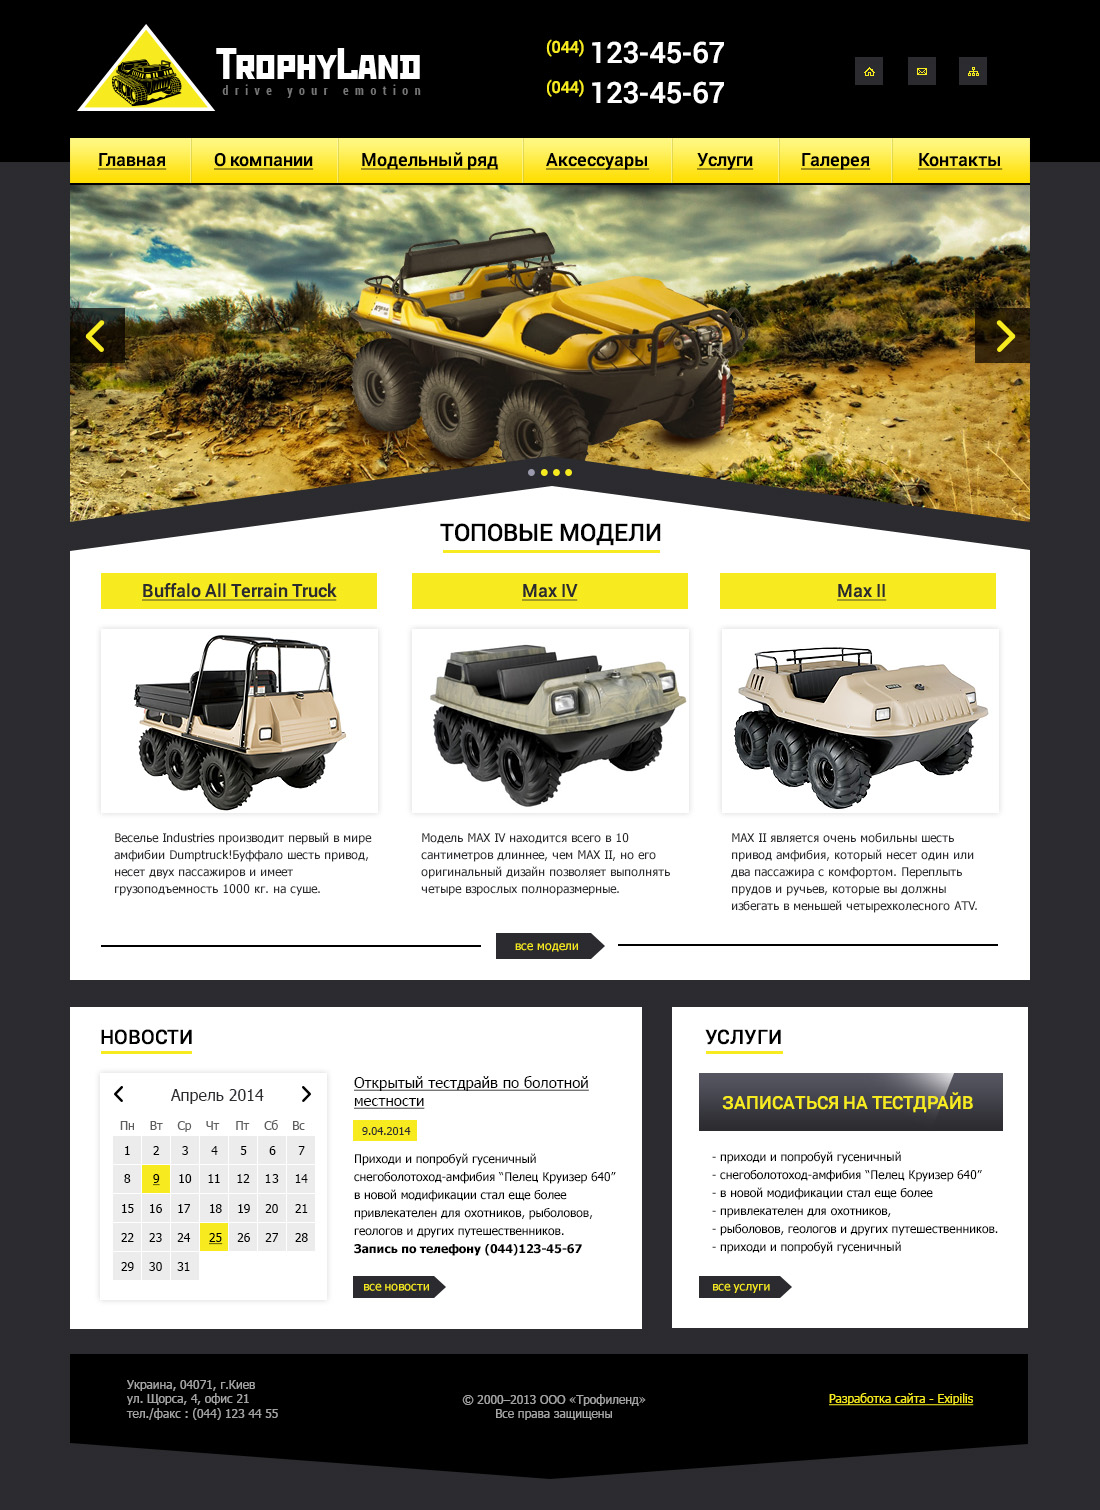 Homepage design of TrophyLand website